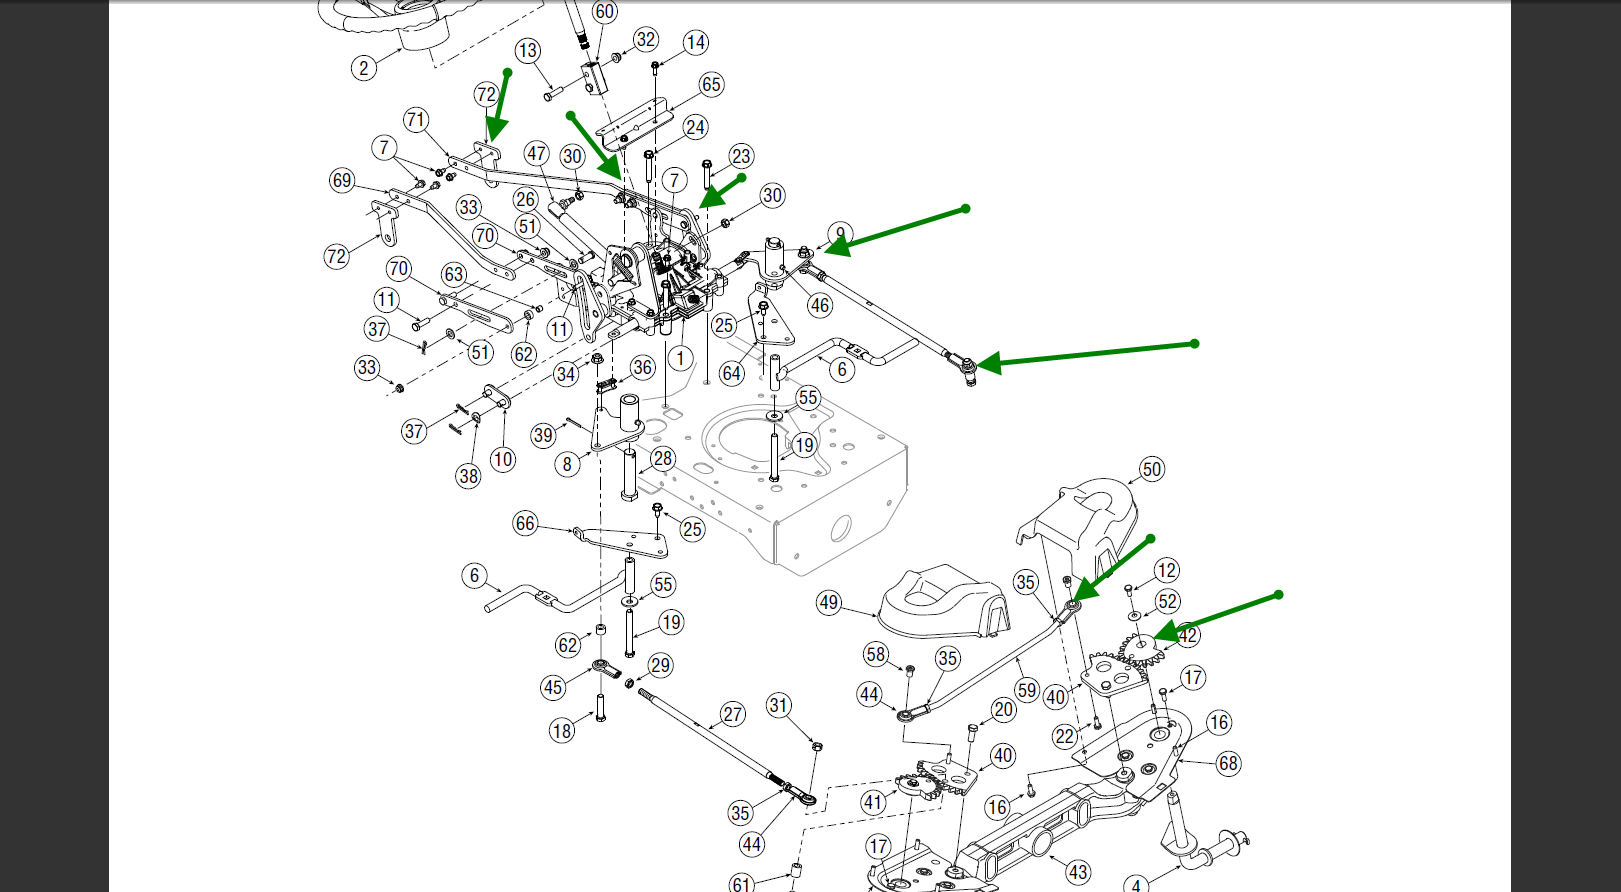 Schematics i also International Paystar 5000 Wiring Diagram together with XX6s 6271 additionally HA9k 8839 in addition John Deere 310j Wiring Diagram. on john deere 2010 wiring diagram